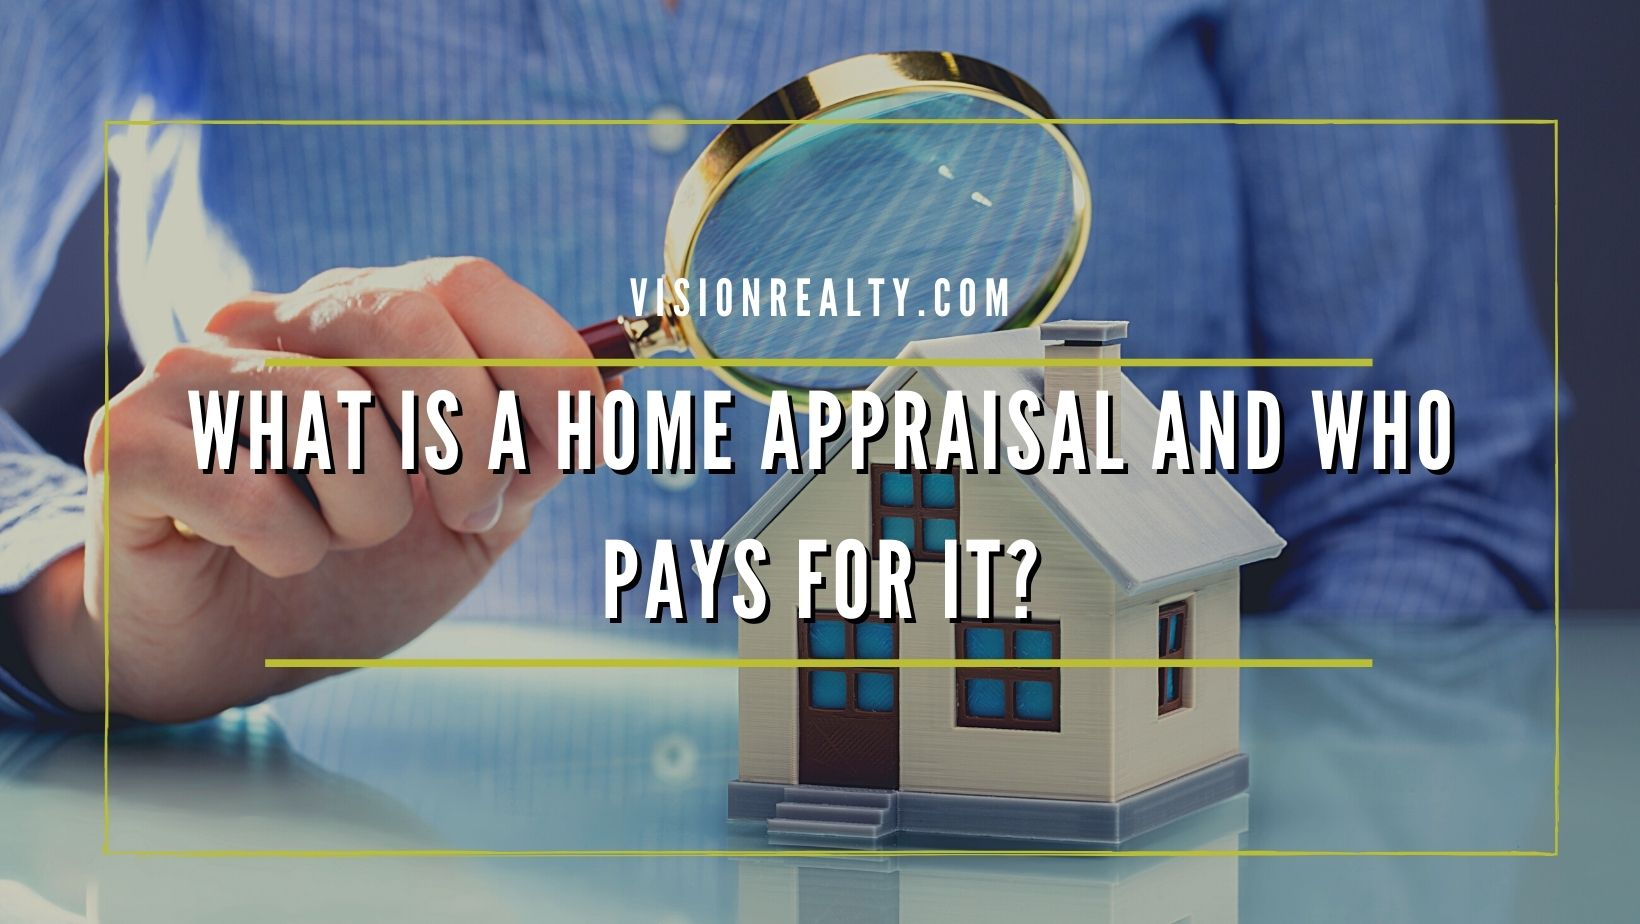 What is a Home Appraisal and Who Pays for It?